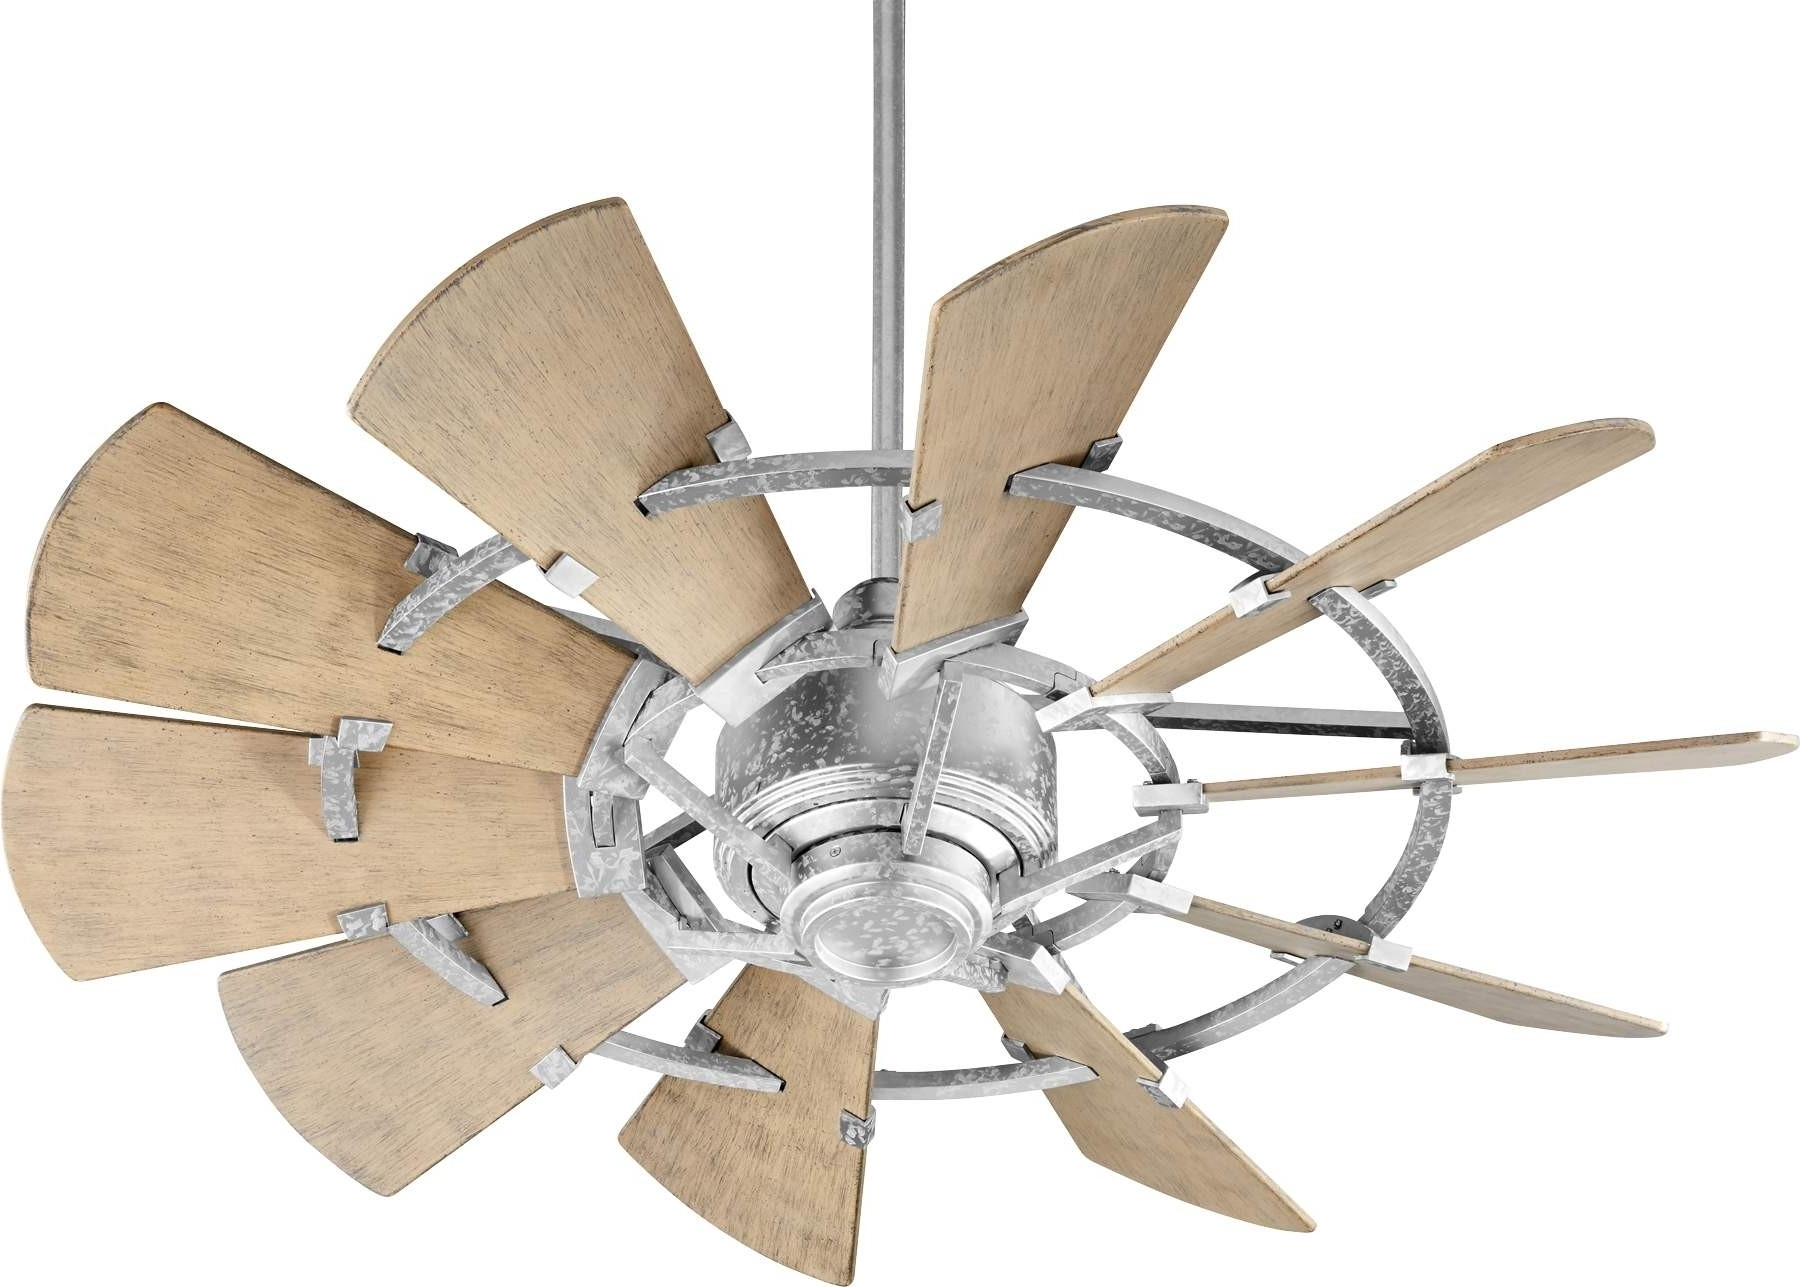 Latest Outdoor Windmill Ceiling Fans With Light Throughout Quorum Windmill Ceiling Fan Model 194410 9 In Galvanized (View 7 of 20)